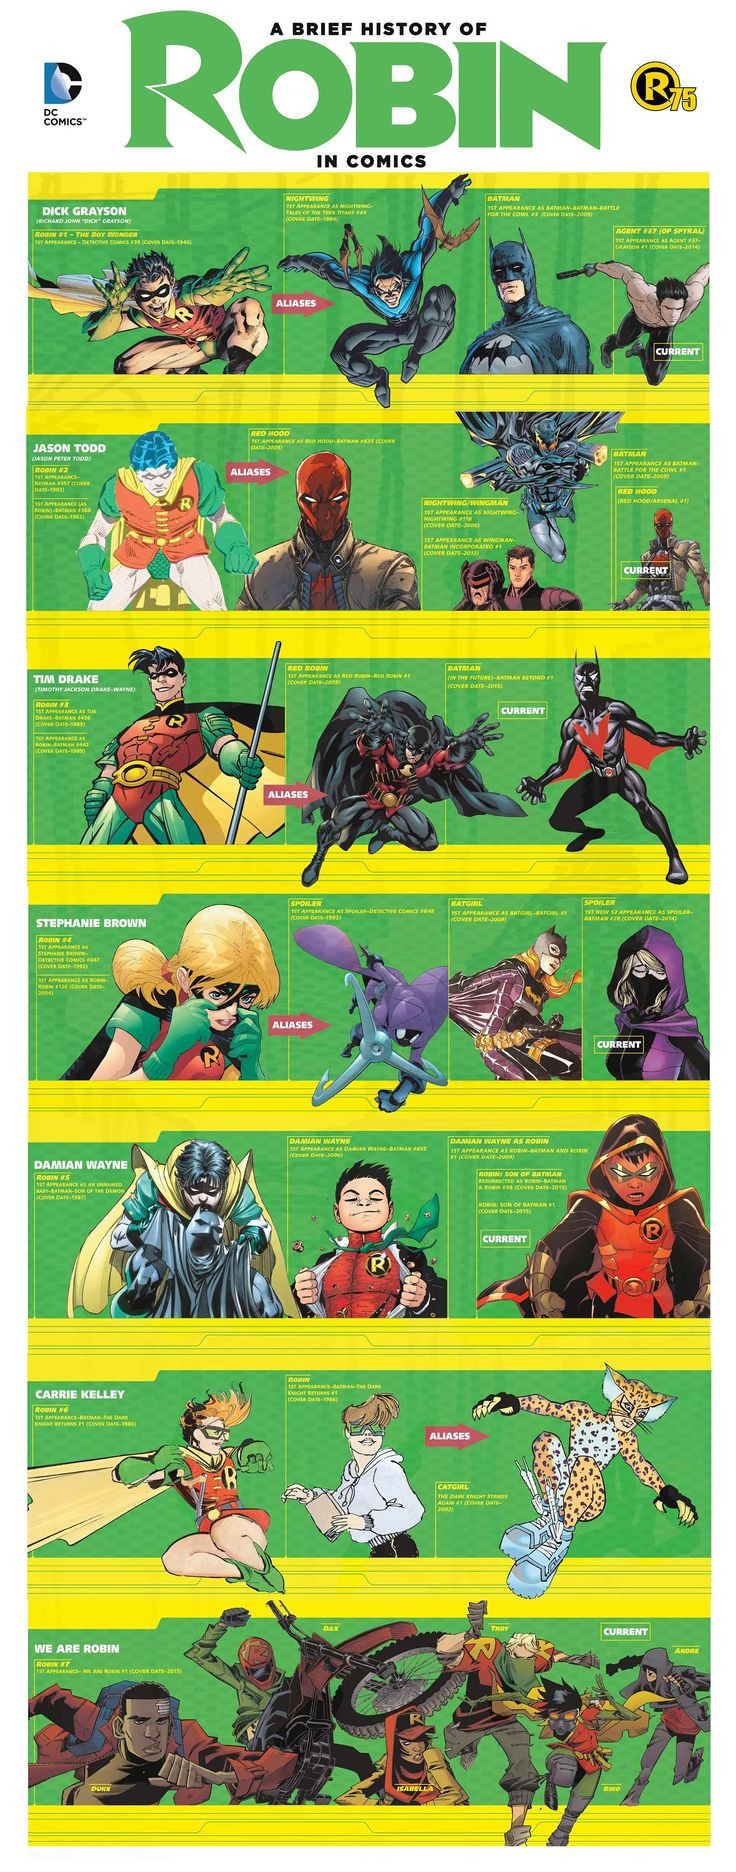 DC's A BRIEF HISTORY OF ROBINS (In Comic Books) Infographic | Newsarama.com